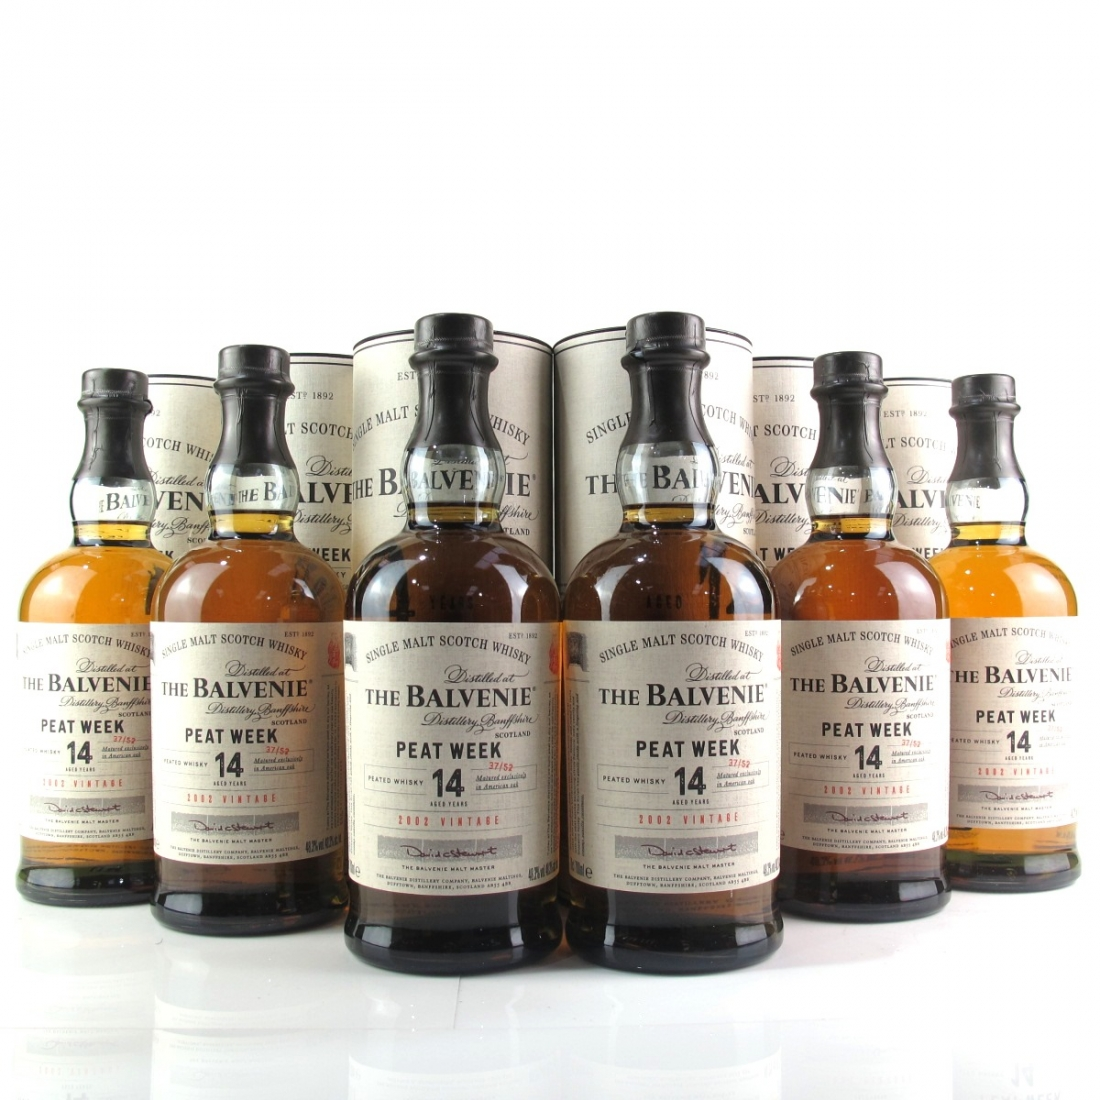 Balvenie 2002 Peat Week 14 Year Old 6 x 70cl